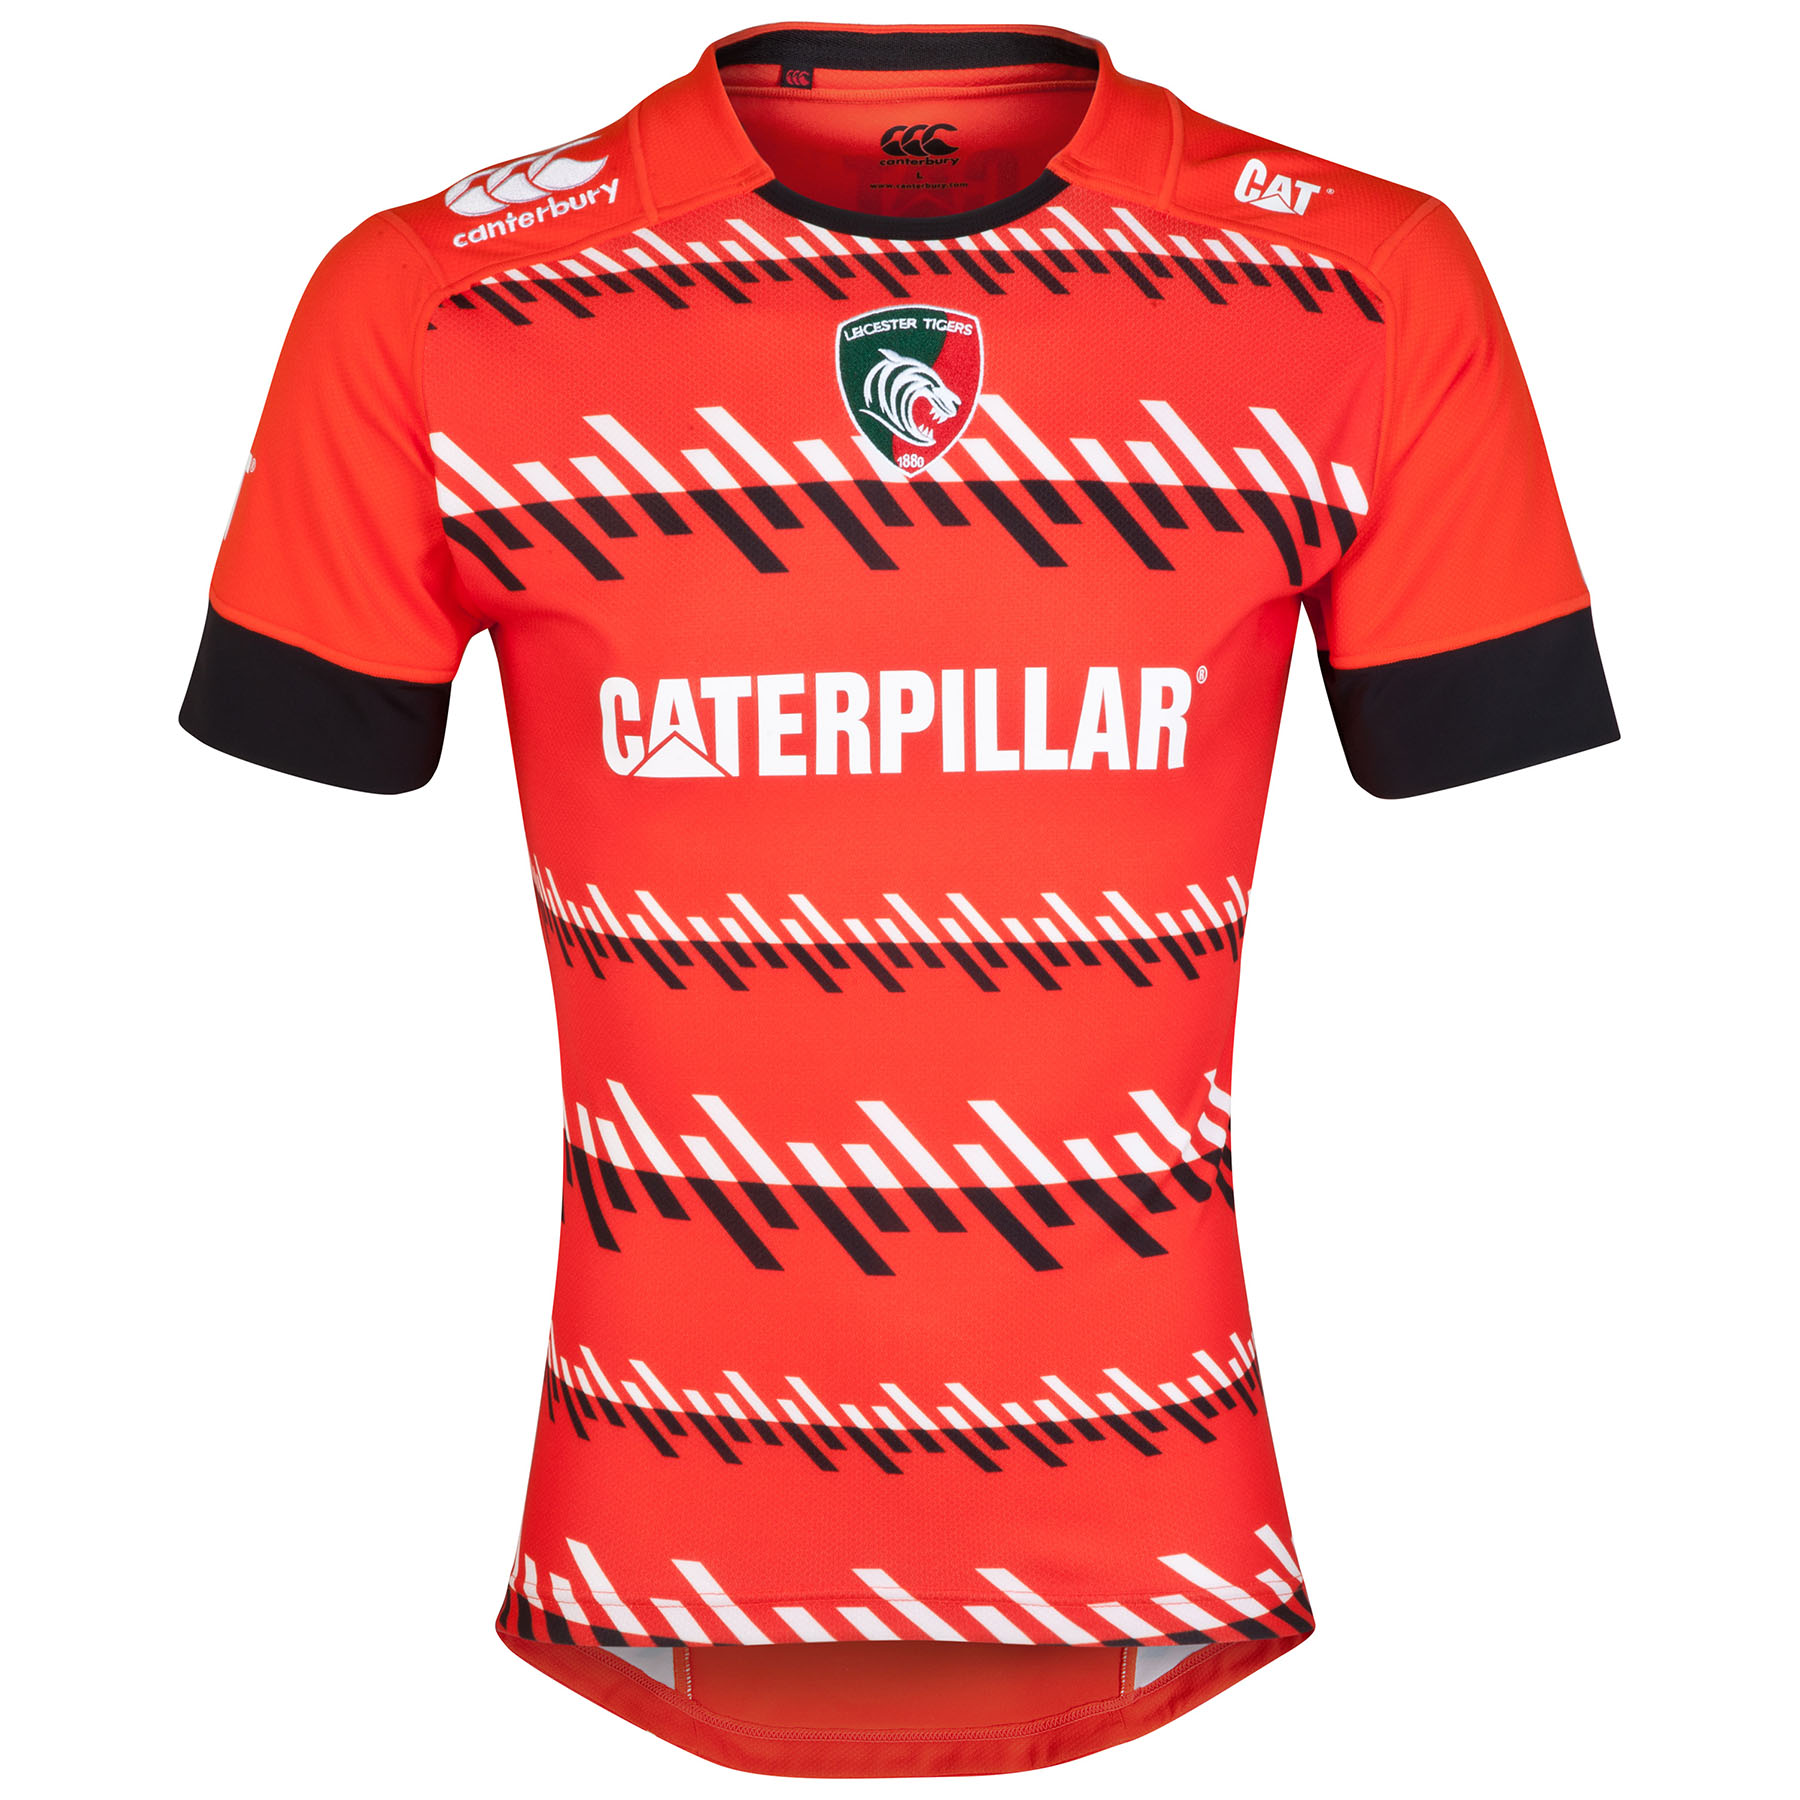 Leicester Tigers Alternate Test Jersey 2014/15 Orange